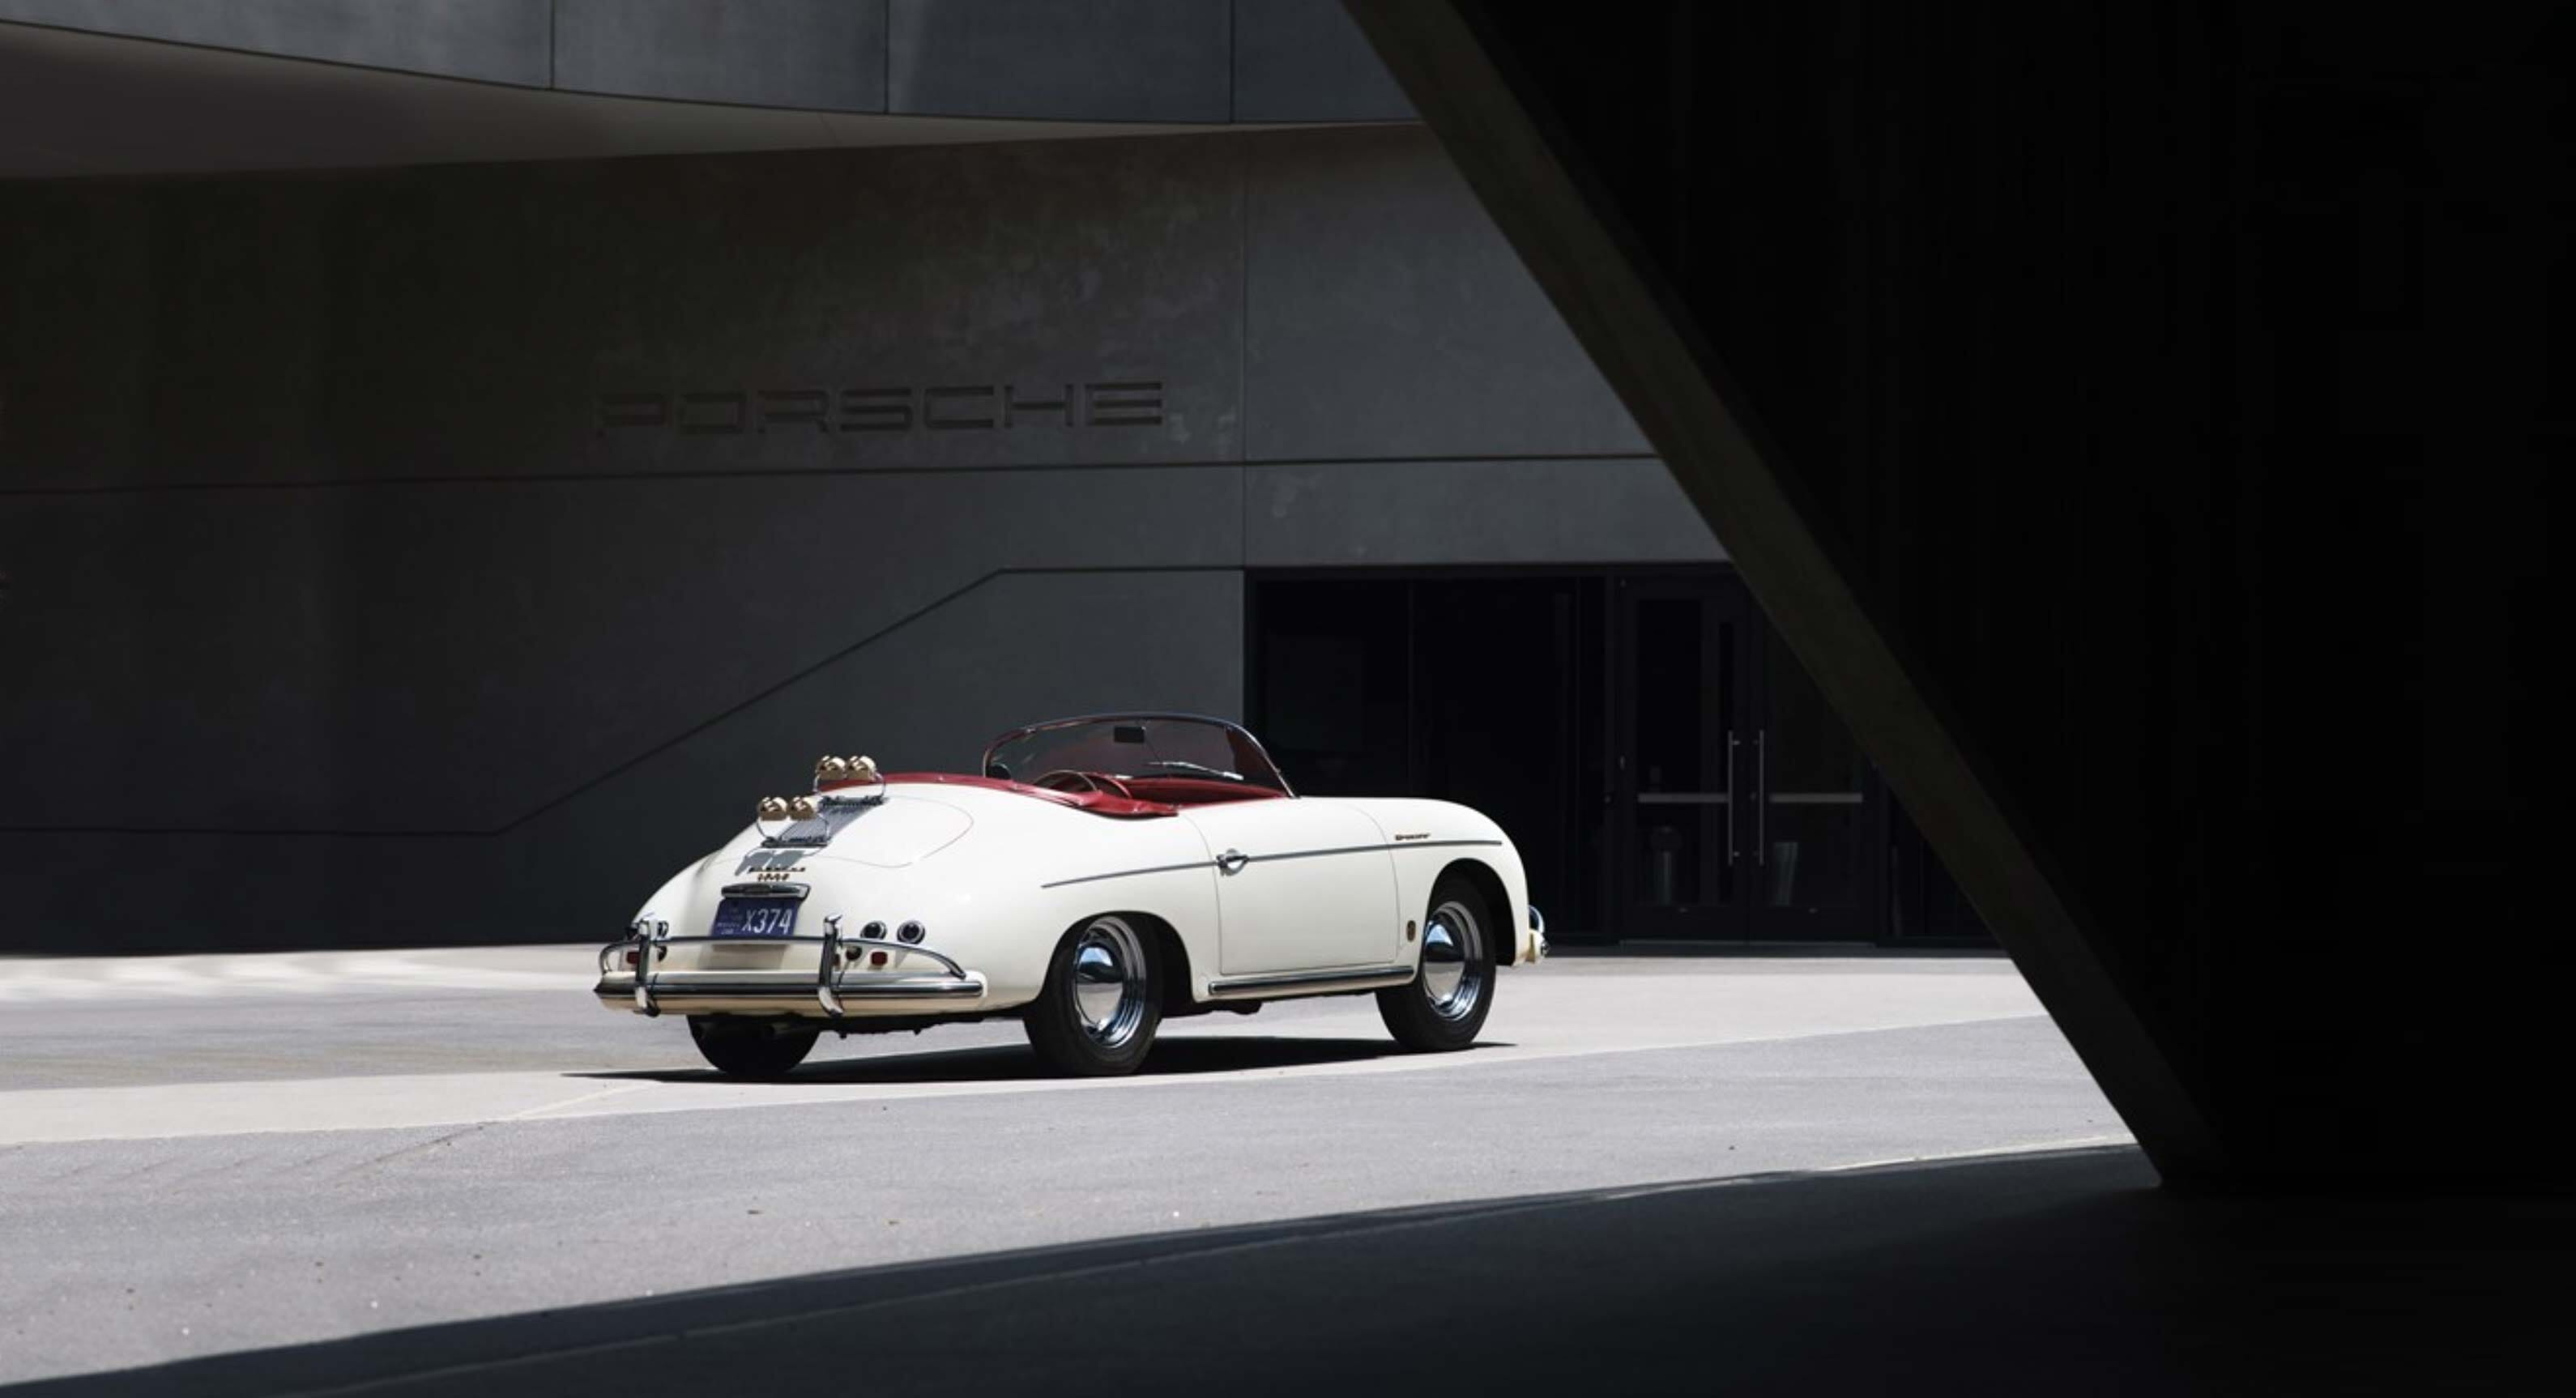 This 1956 Porsche 356 Super Speedster Is The Stuff Of Automotive Dreams